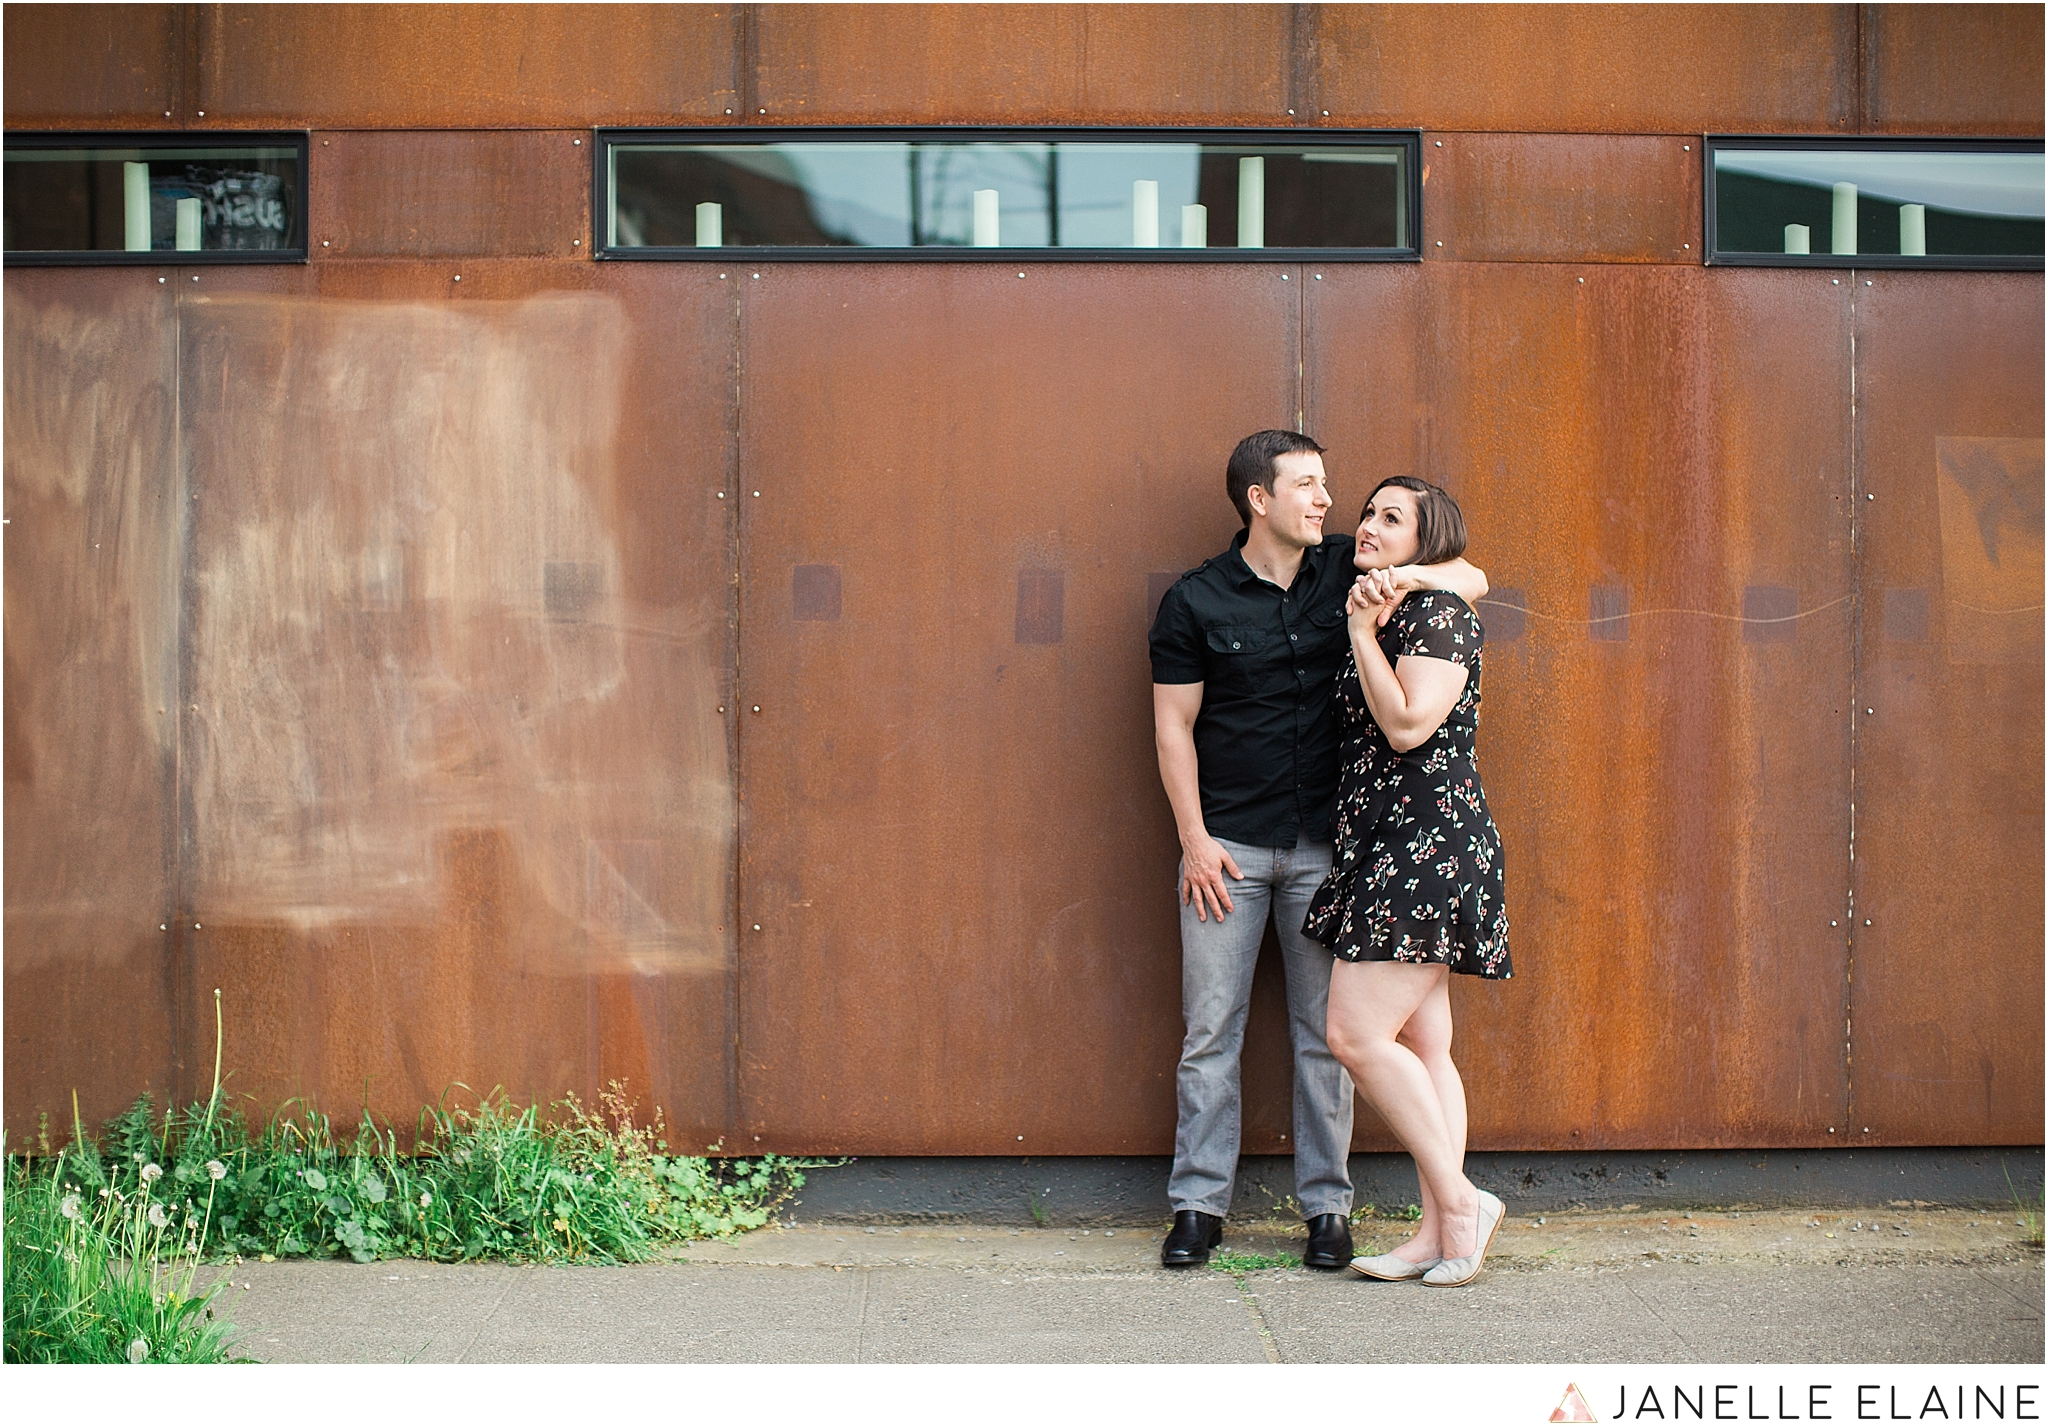 karen ethan-georgetown engagement photos-seattle-janelle elaine photography-30.jpg